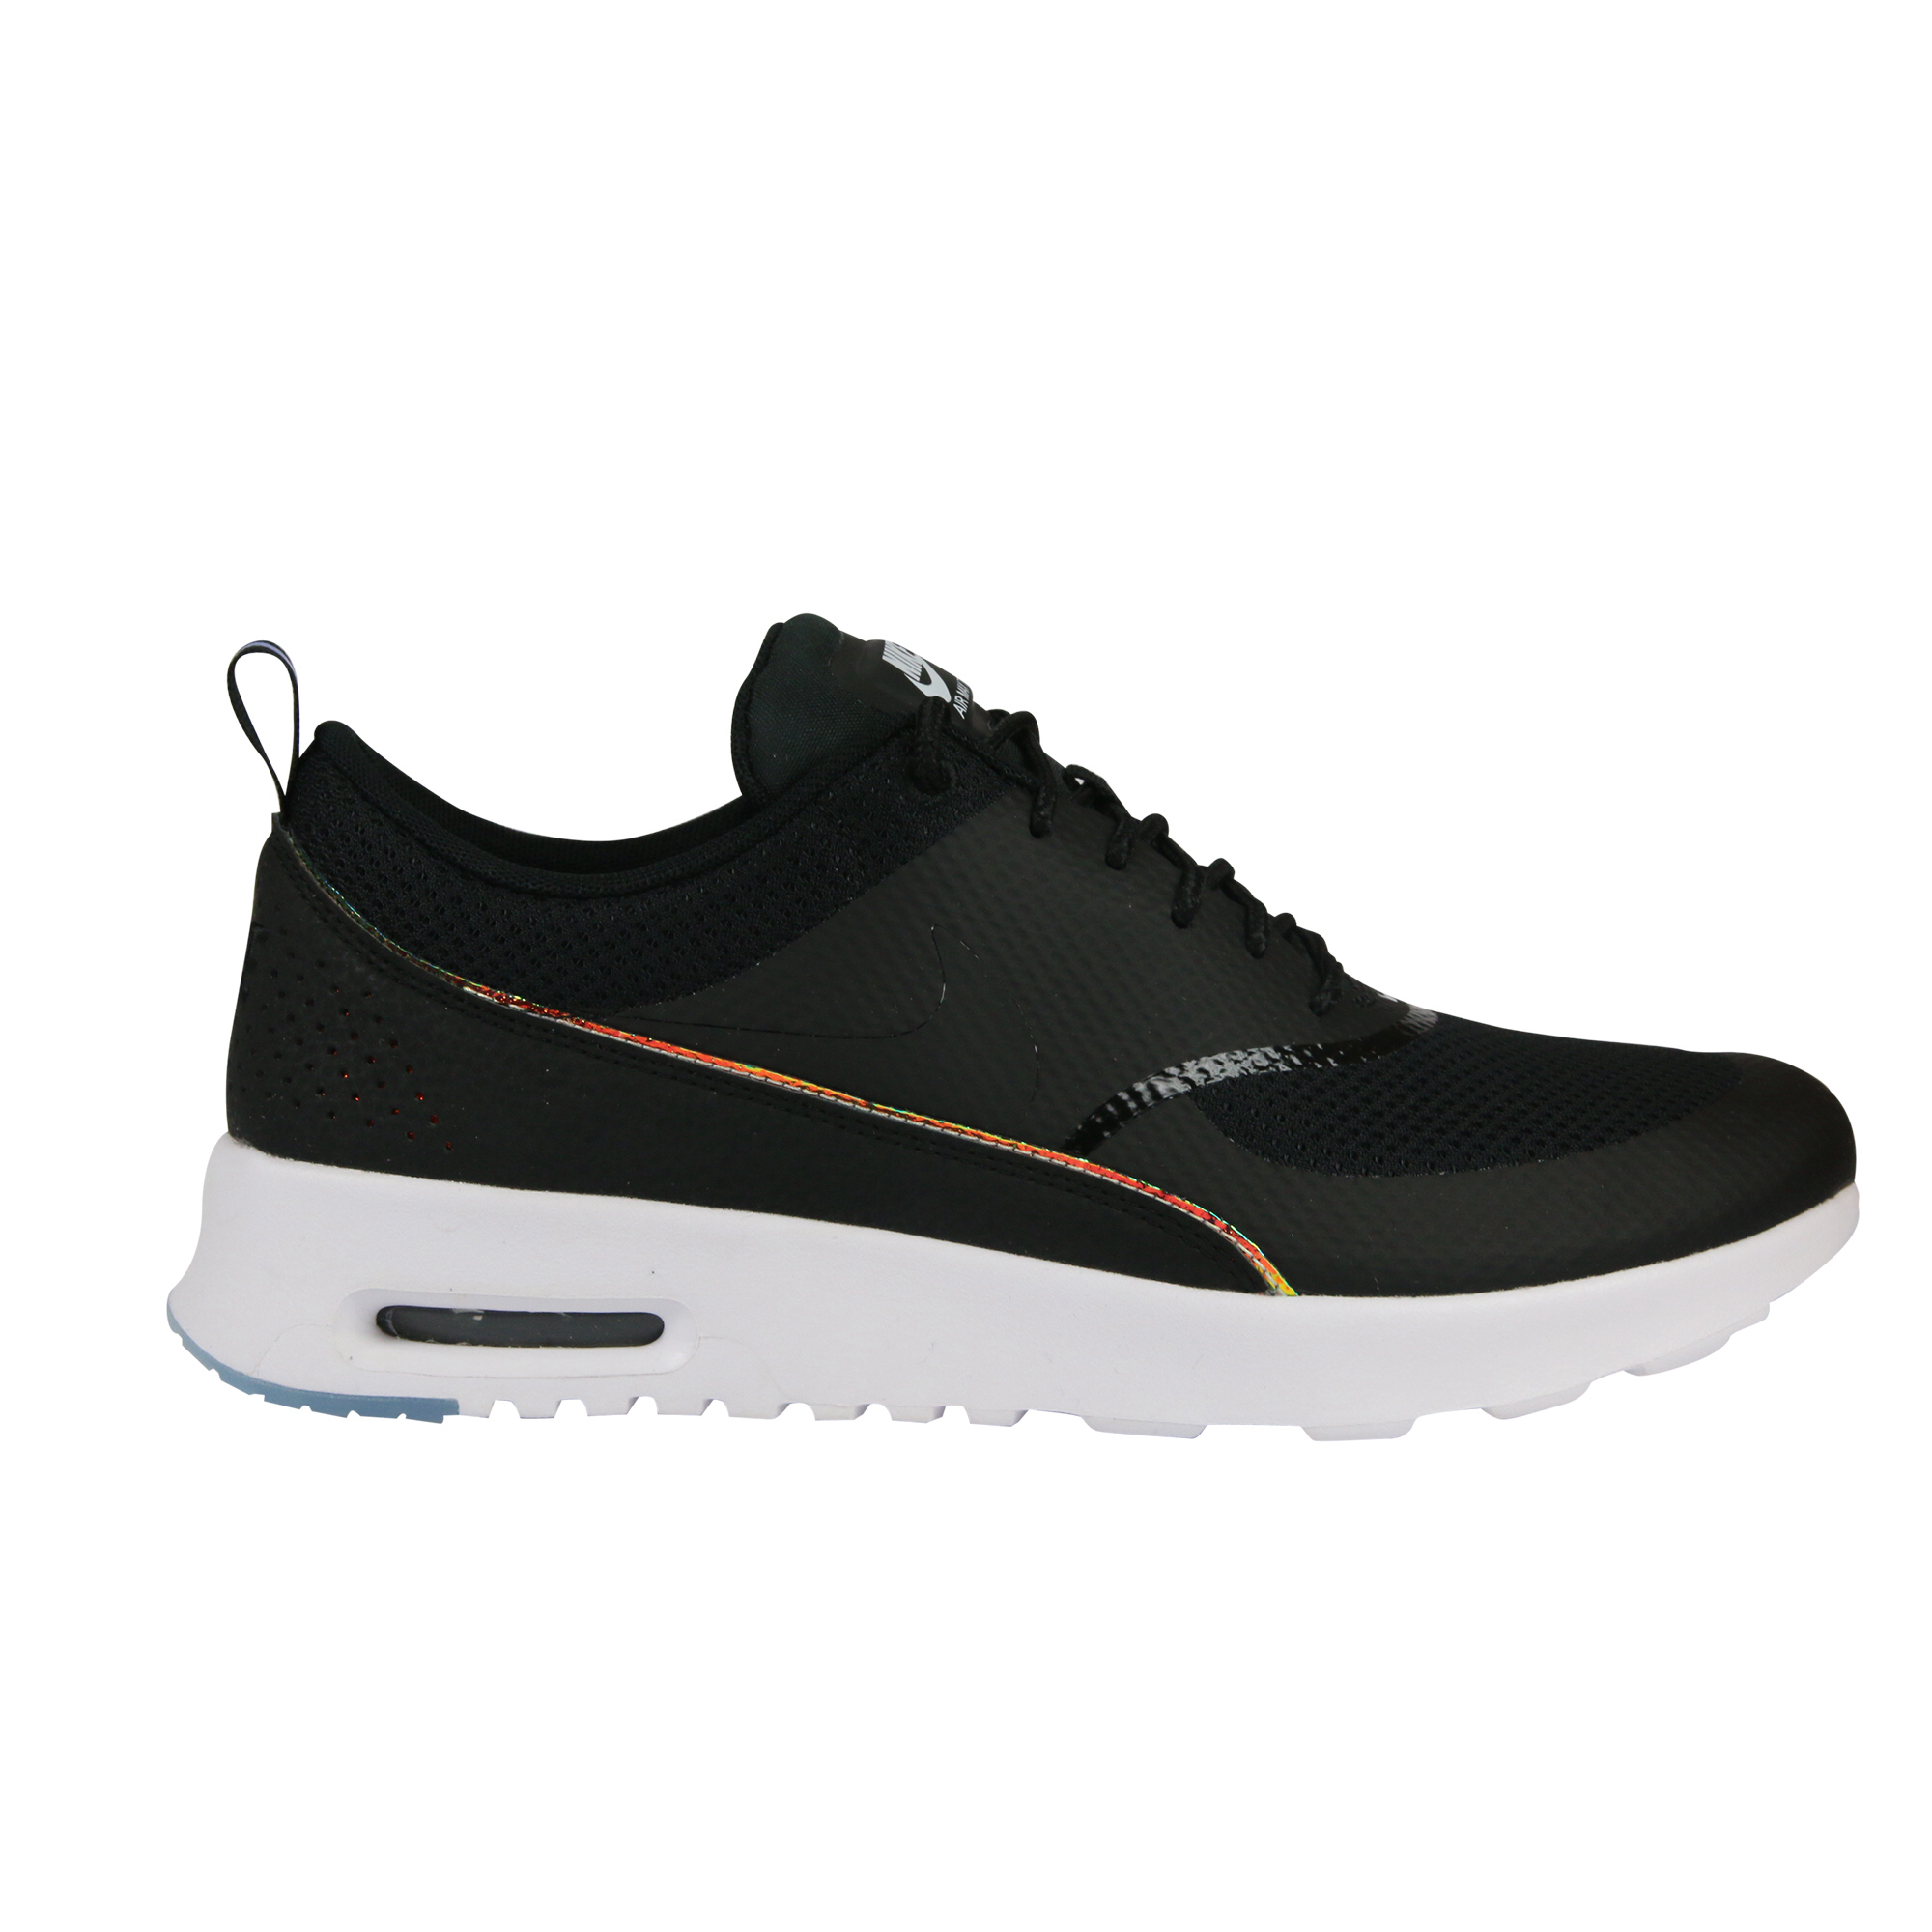 nike air max thea black premium leather sneakers graysands. Black Bedroom Furniture Sets. Home Design Ideas